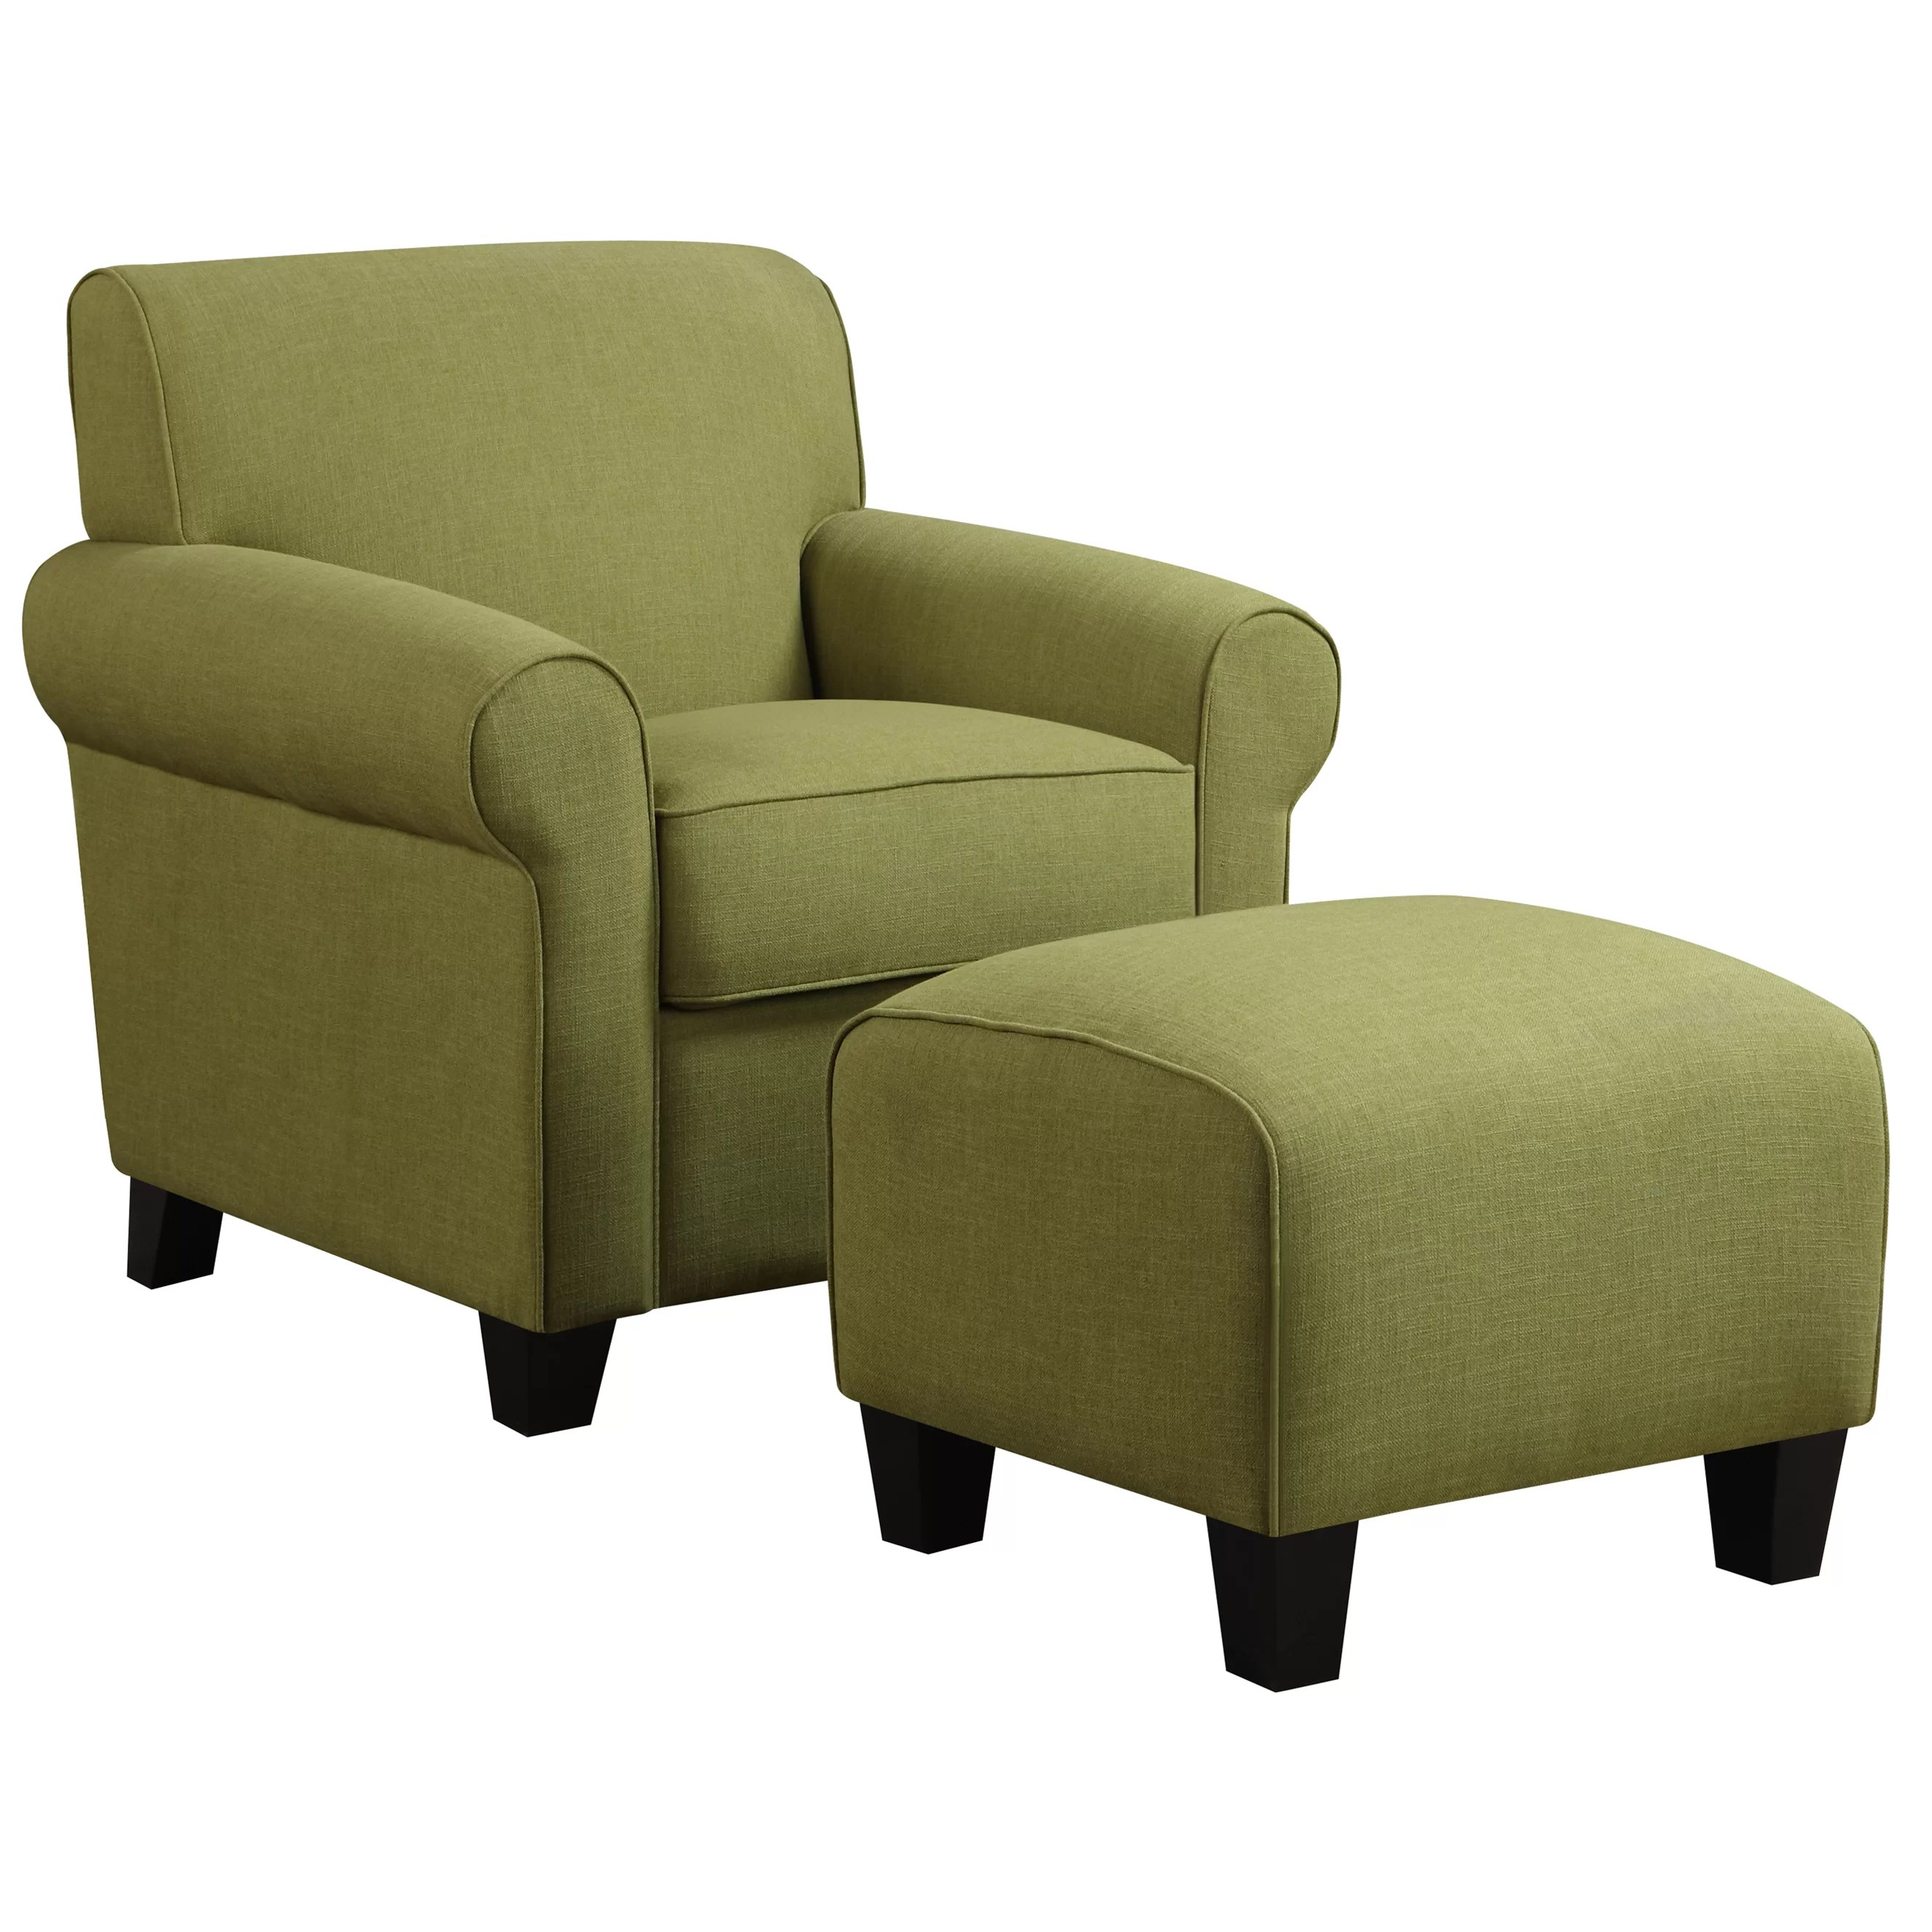 Reading Chair And Ottoman Alcott Hill Oldbury Arm Chair And Ottoman And Reviews Wayfair